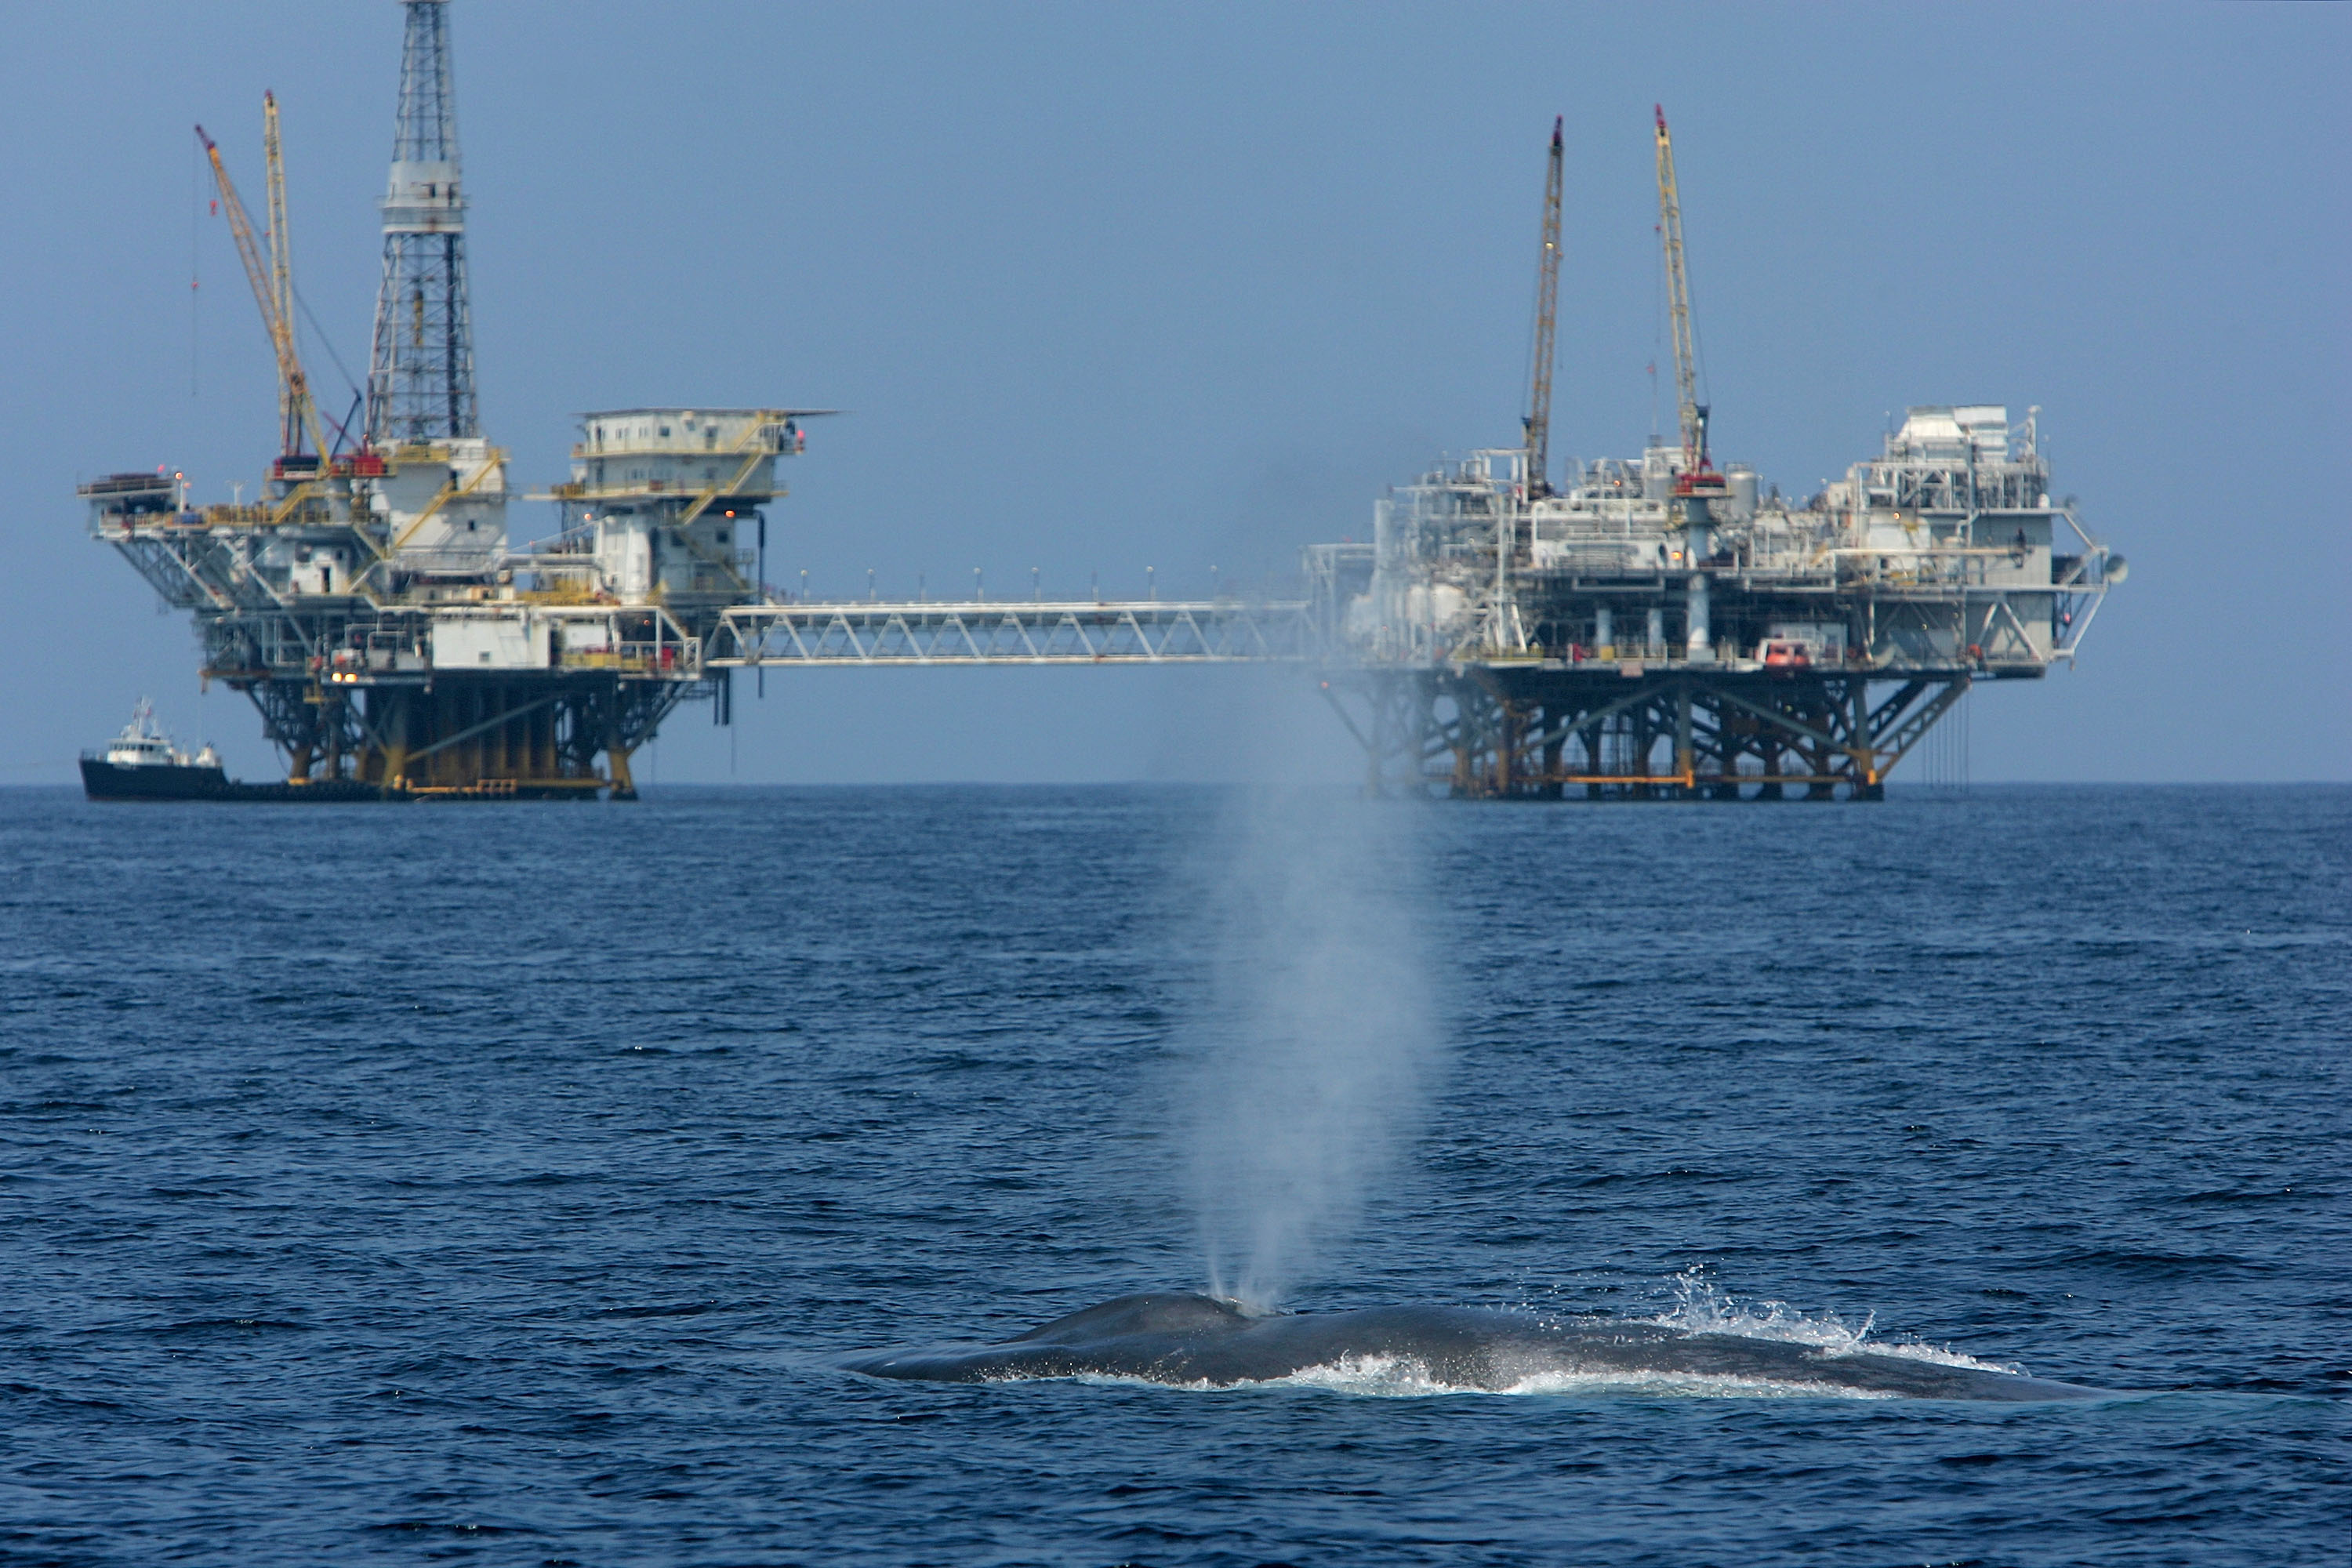 And endangered blue whale spouts near offshore oil rigs, a known source of human-caused noise pollution in the ocean.